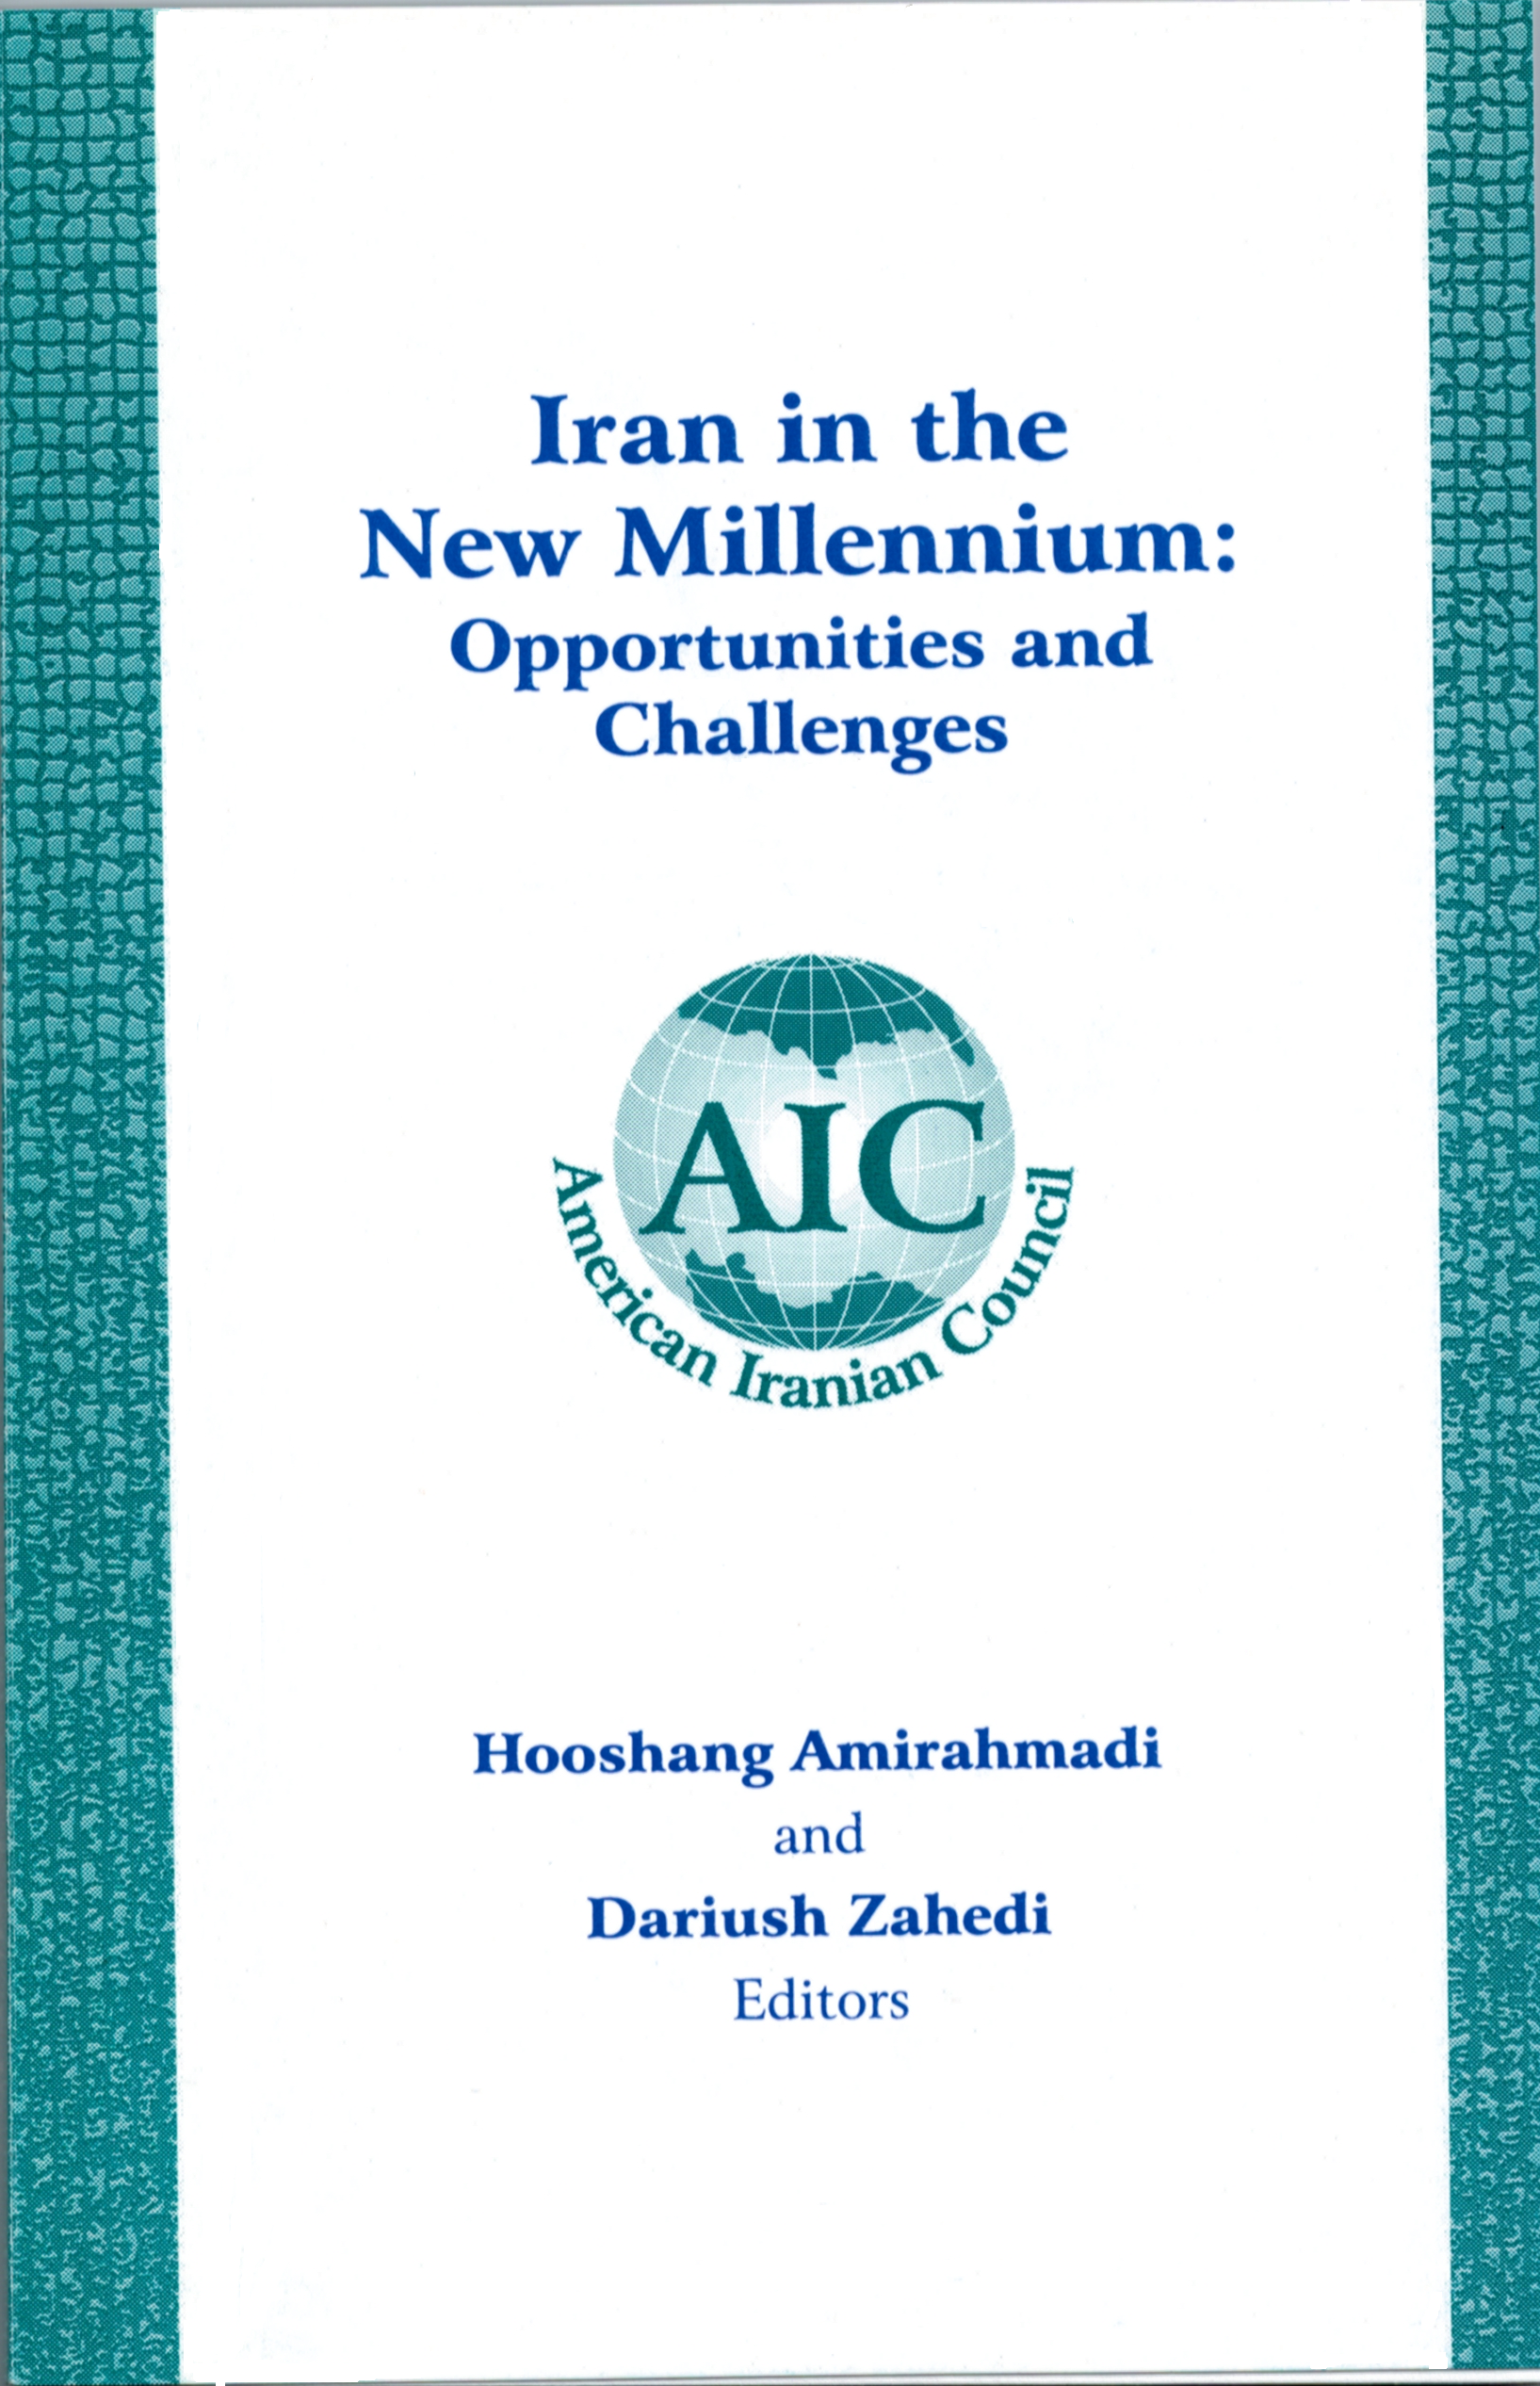 Iran in the New Millennium Opportunities and Challenges